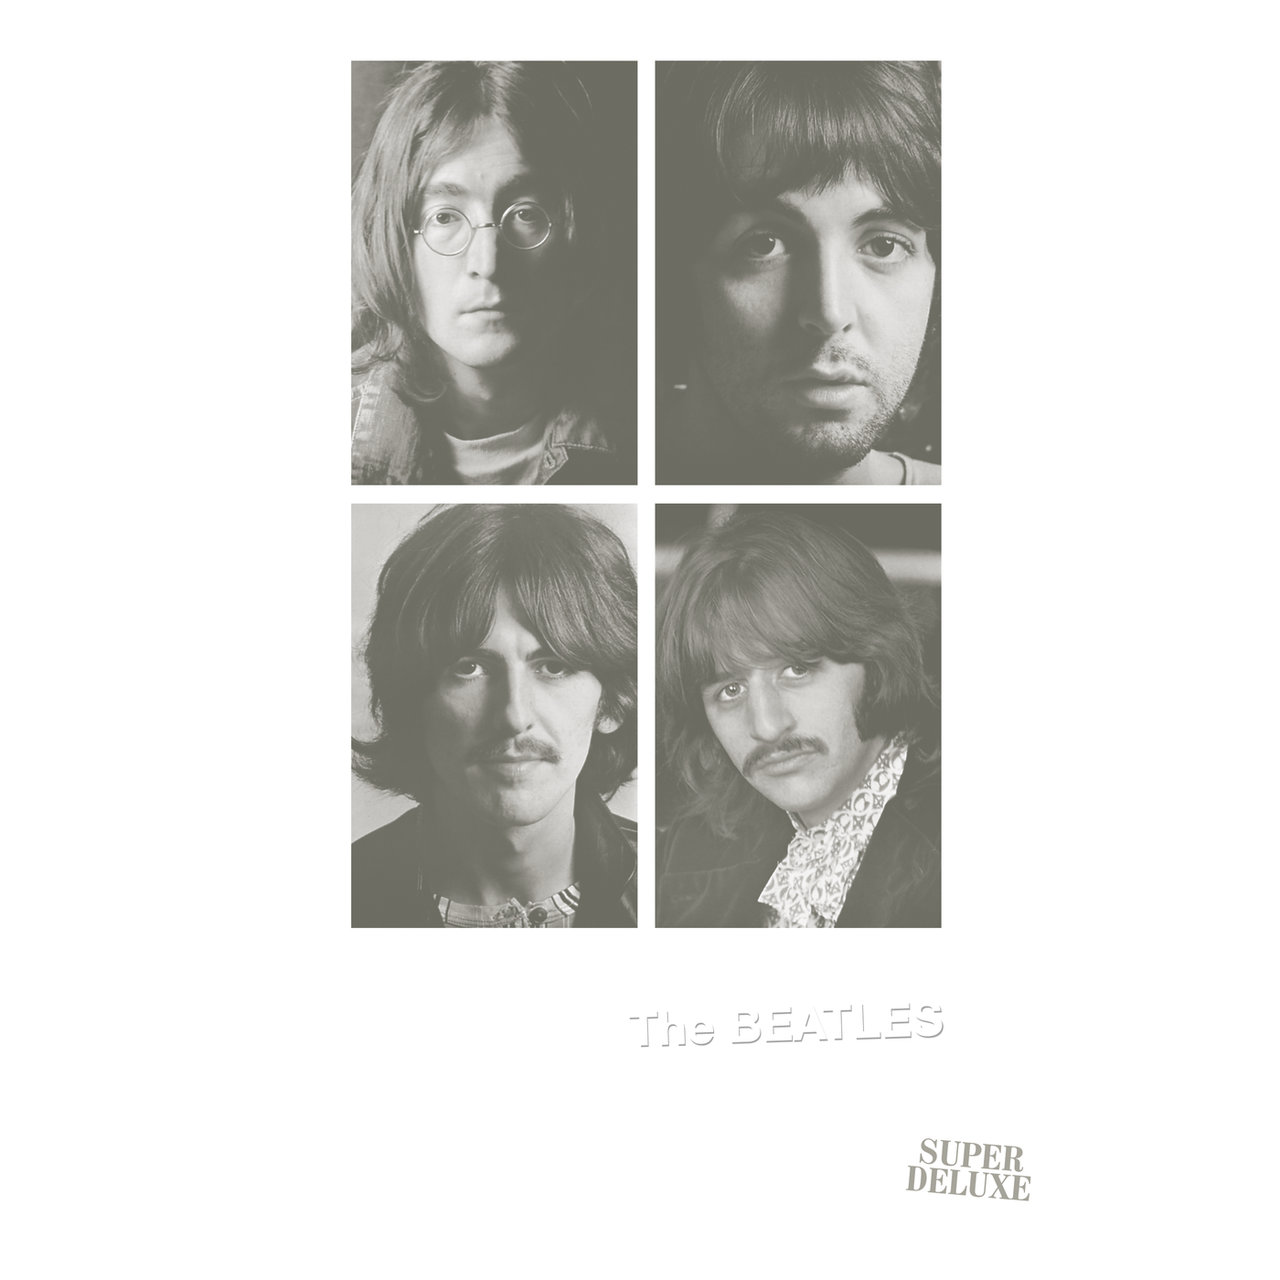 The Beatles (White Album / Super Deluxe)